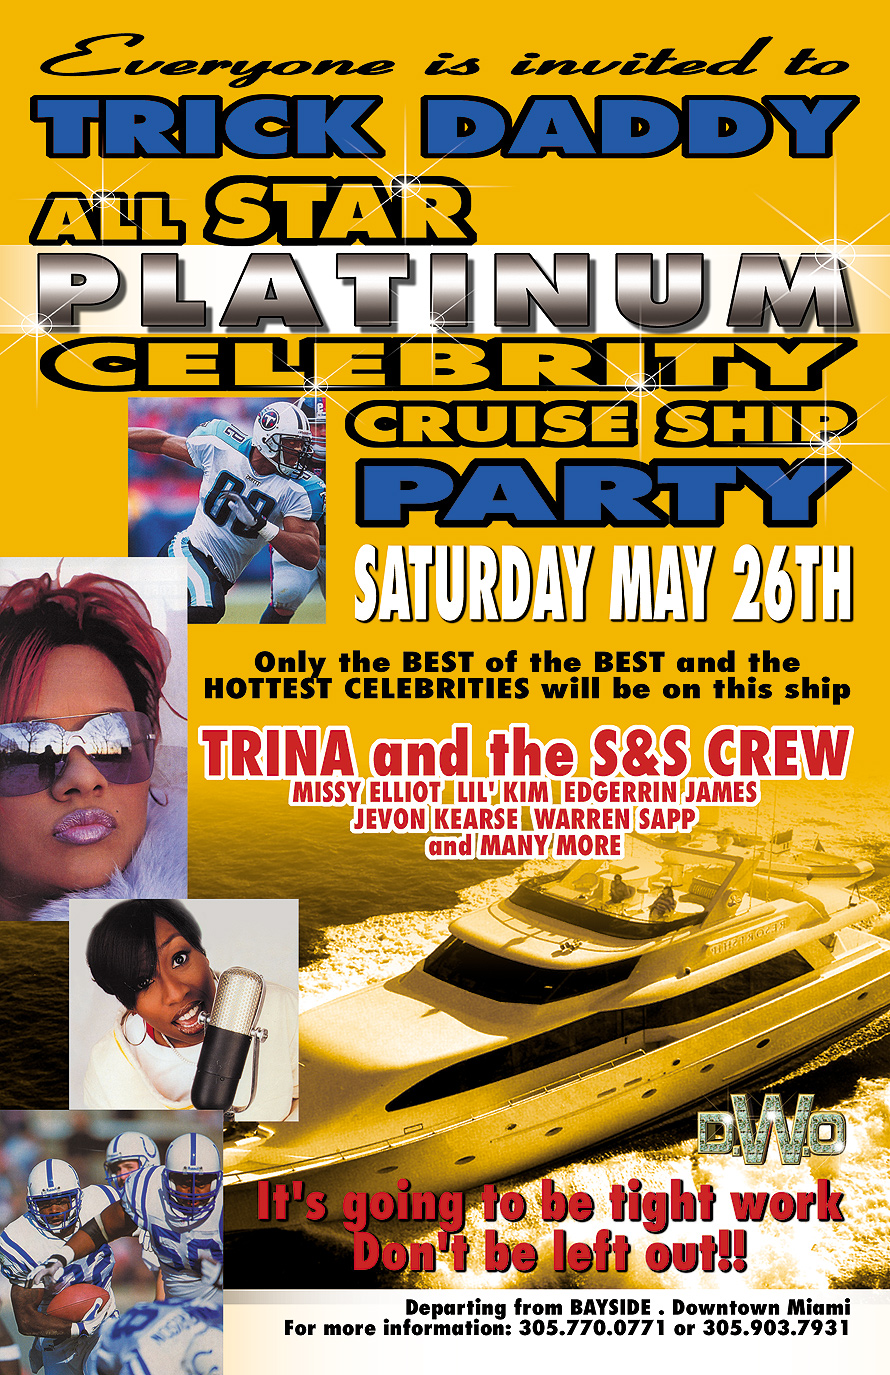 Trick Daddy All Star Weekend Celebrity Cruise